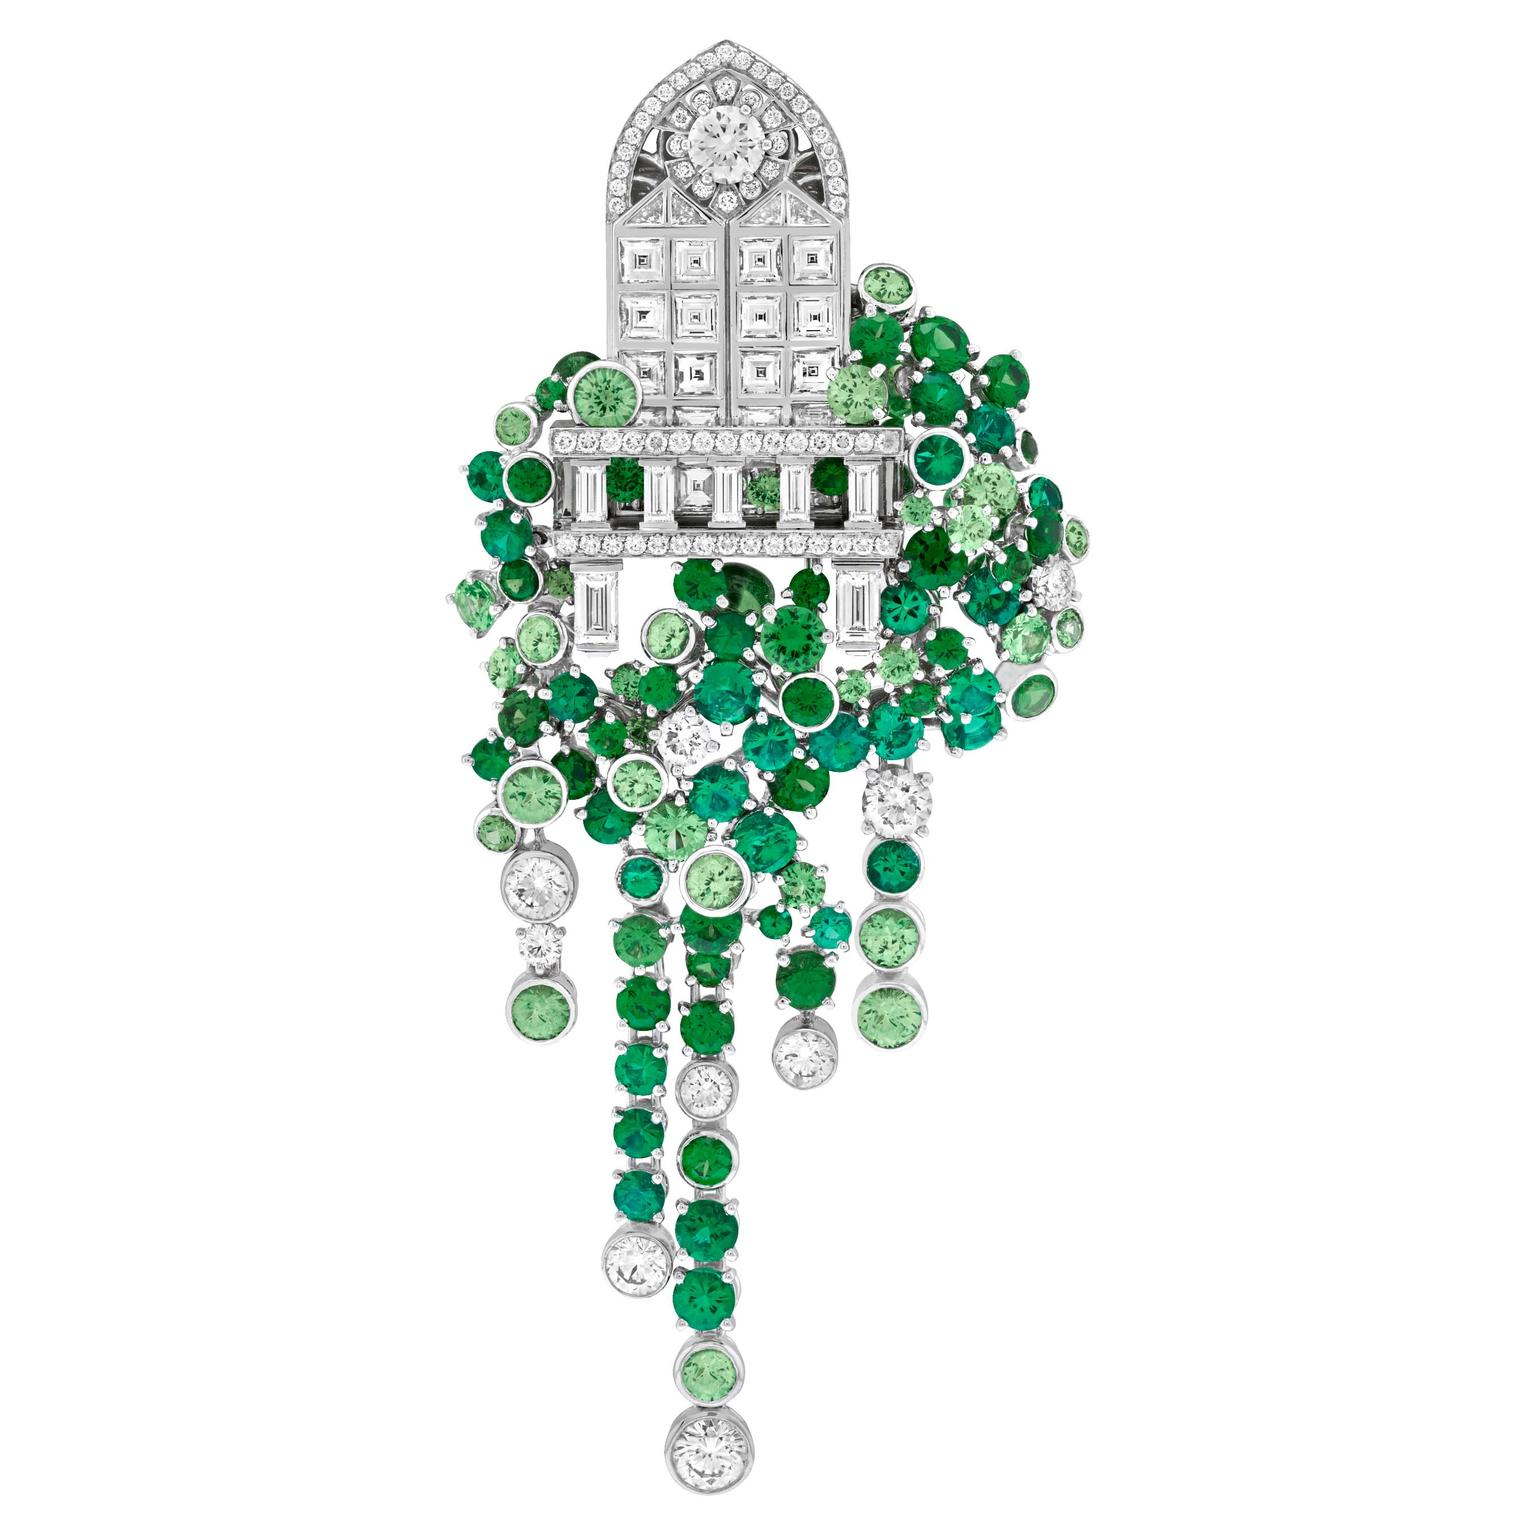 Van Cleef & Arpels Balcone brooch Romeo and Juliet jewels